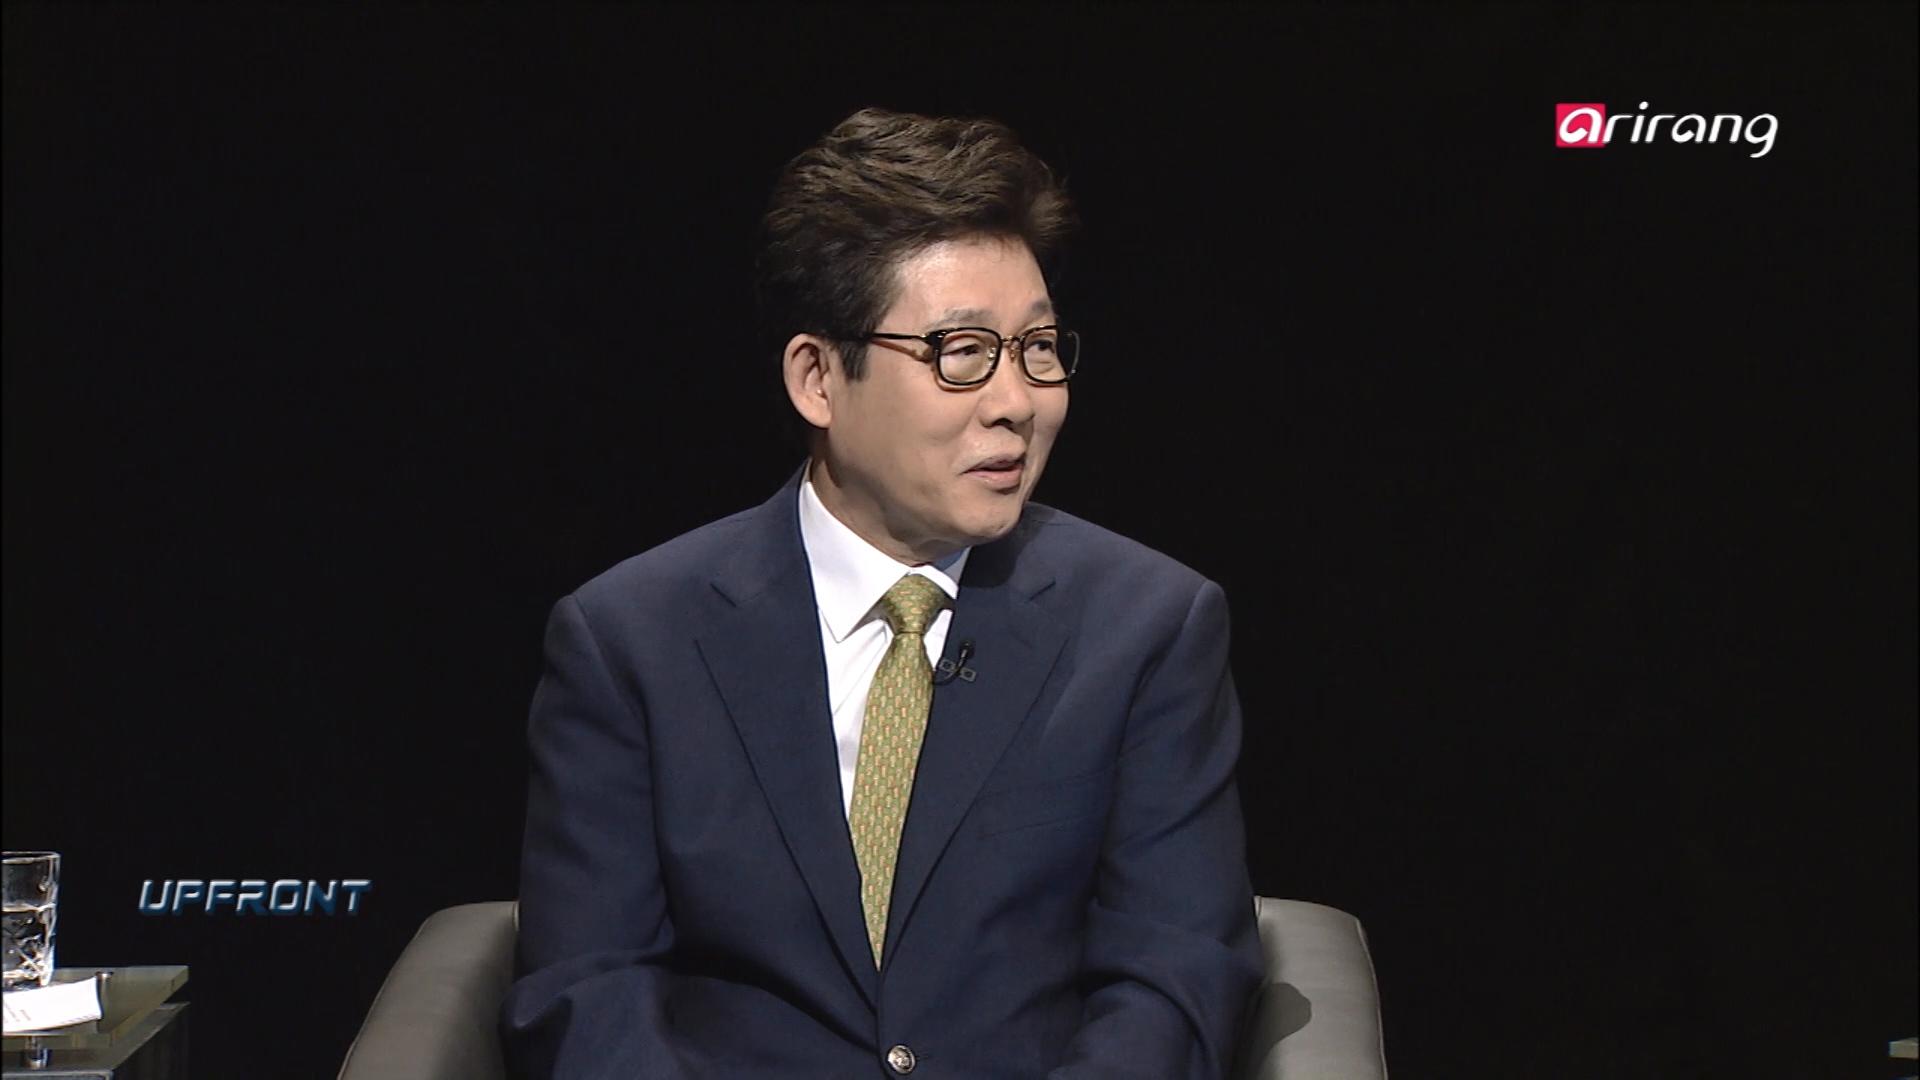 [Upfront] IMF FINDINGS ON KOREA'S HOUSING PRICES